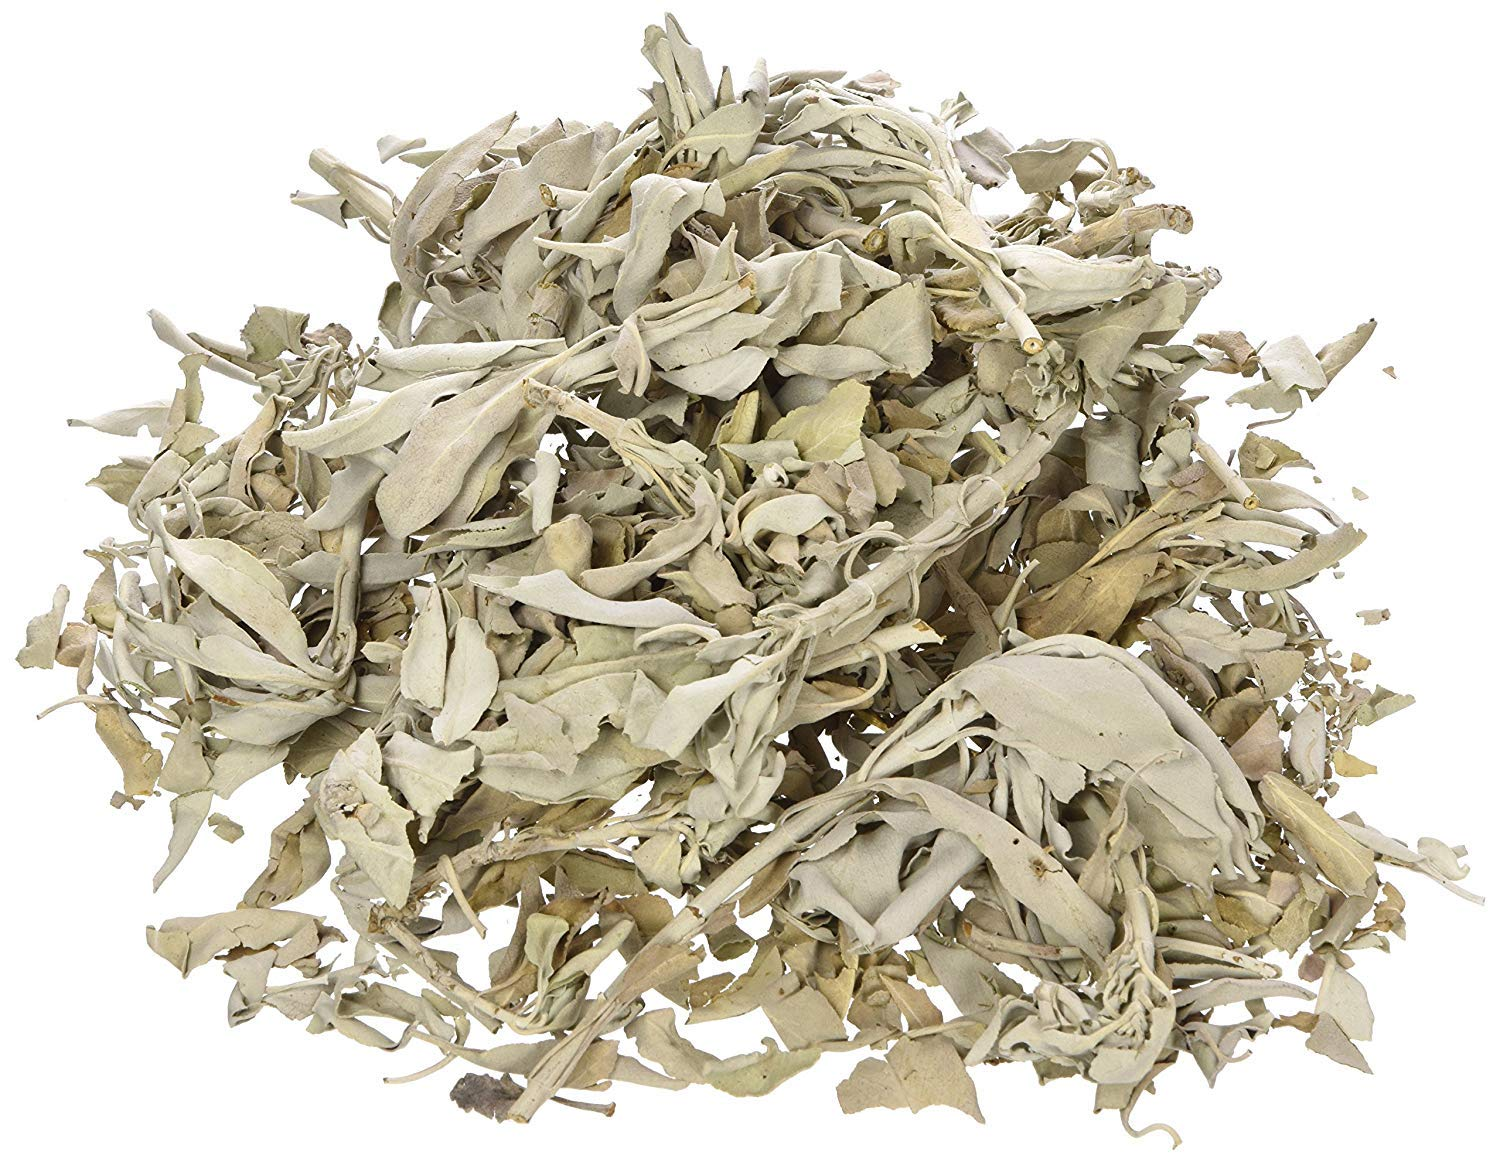 Incense Garden California White Sage Loose Leaves, Salvia Apiana Clusters, Dry Smudging & Burning Sage, 1 Lb Bag by Incense Garden (Image #1)